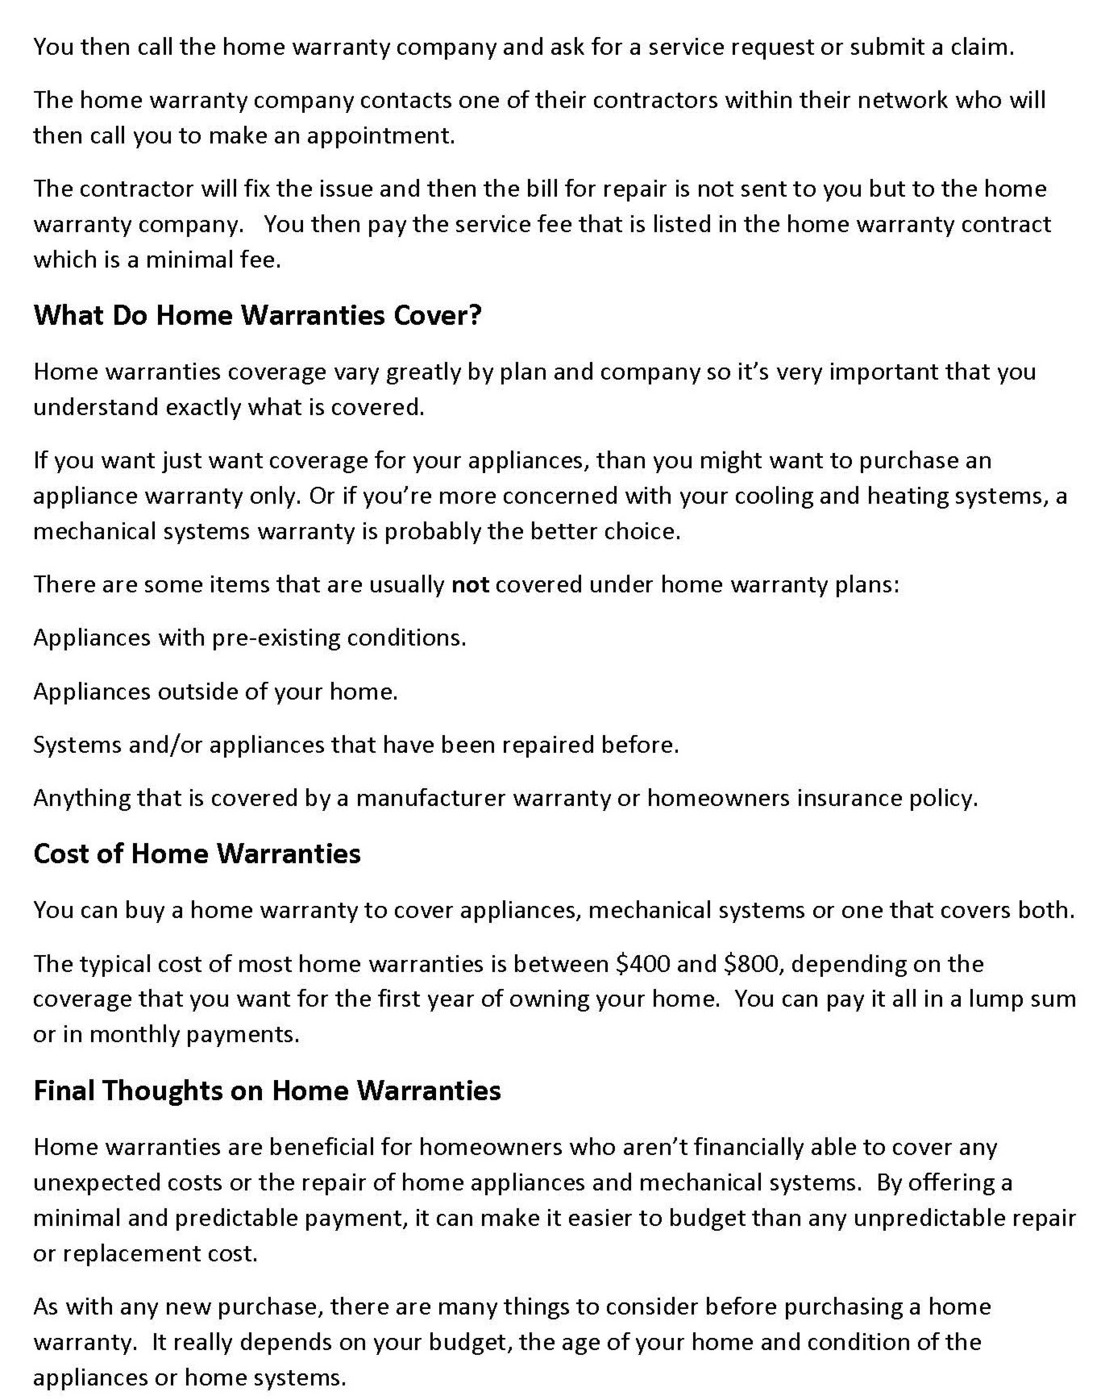 costOfHomeWarranties